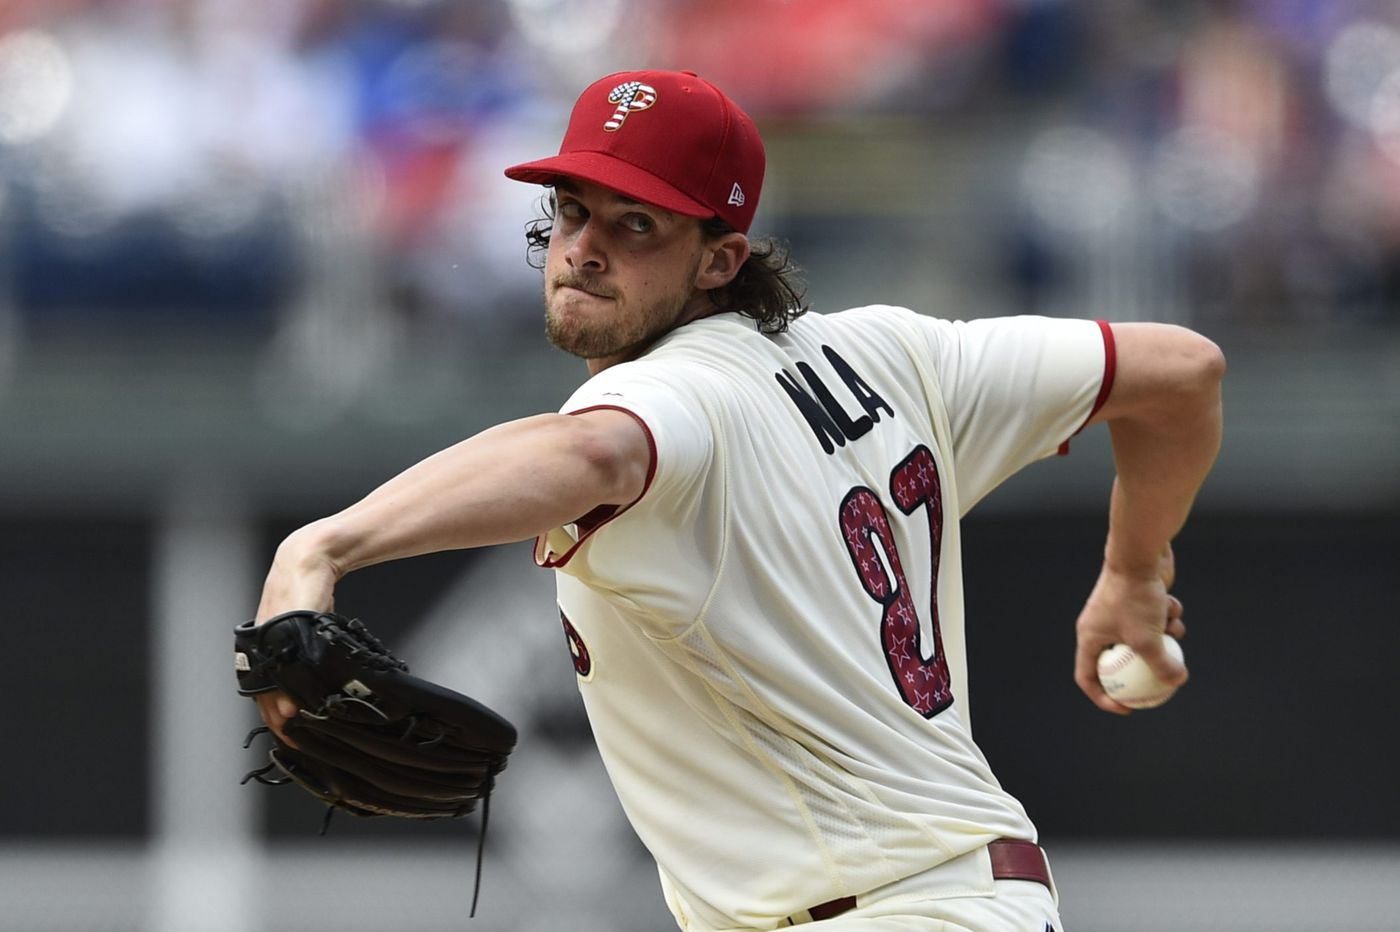 Phillies' Aaron Nola hoping to pitch in All-Star Game, face college roommate